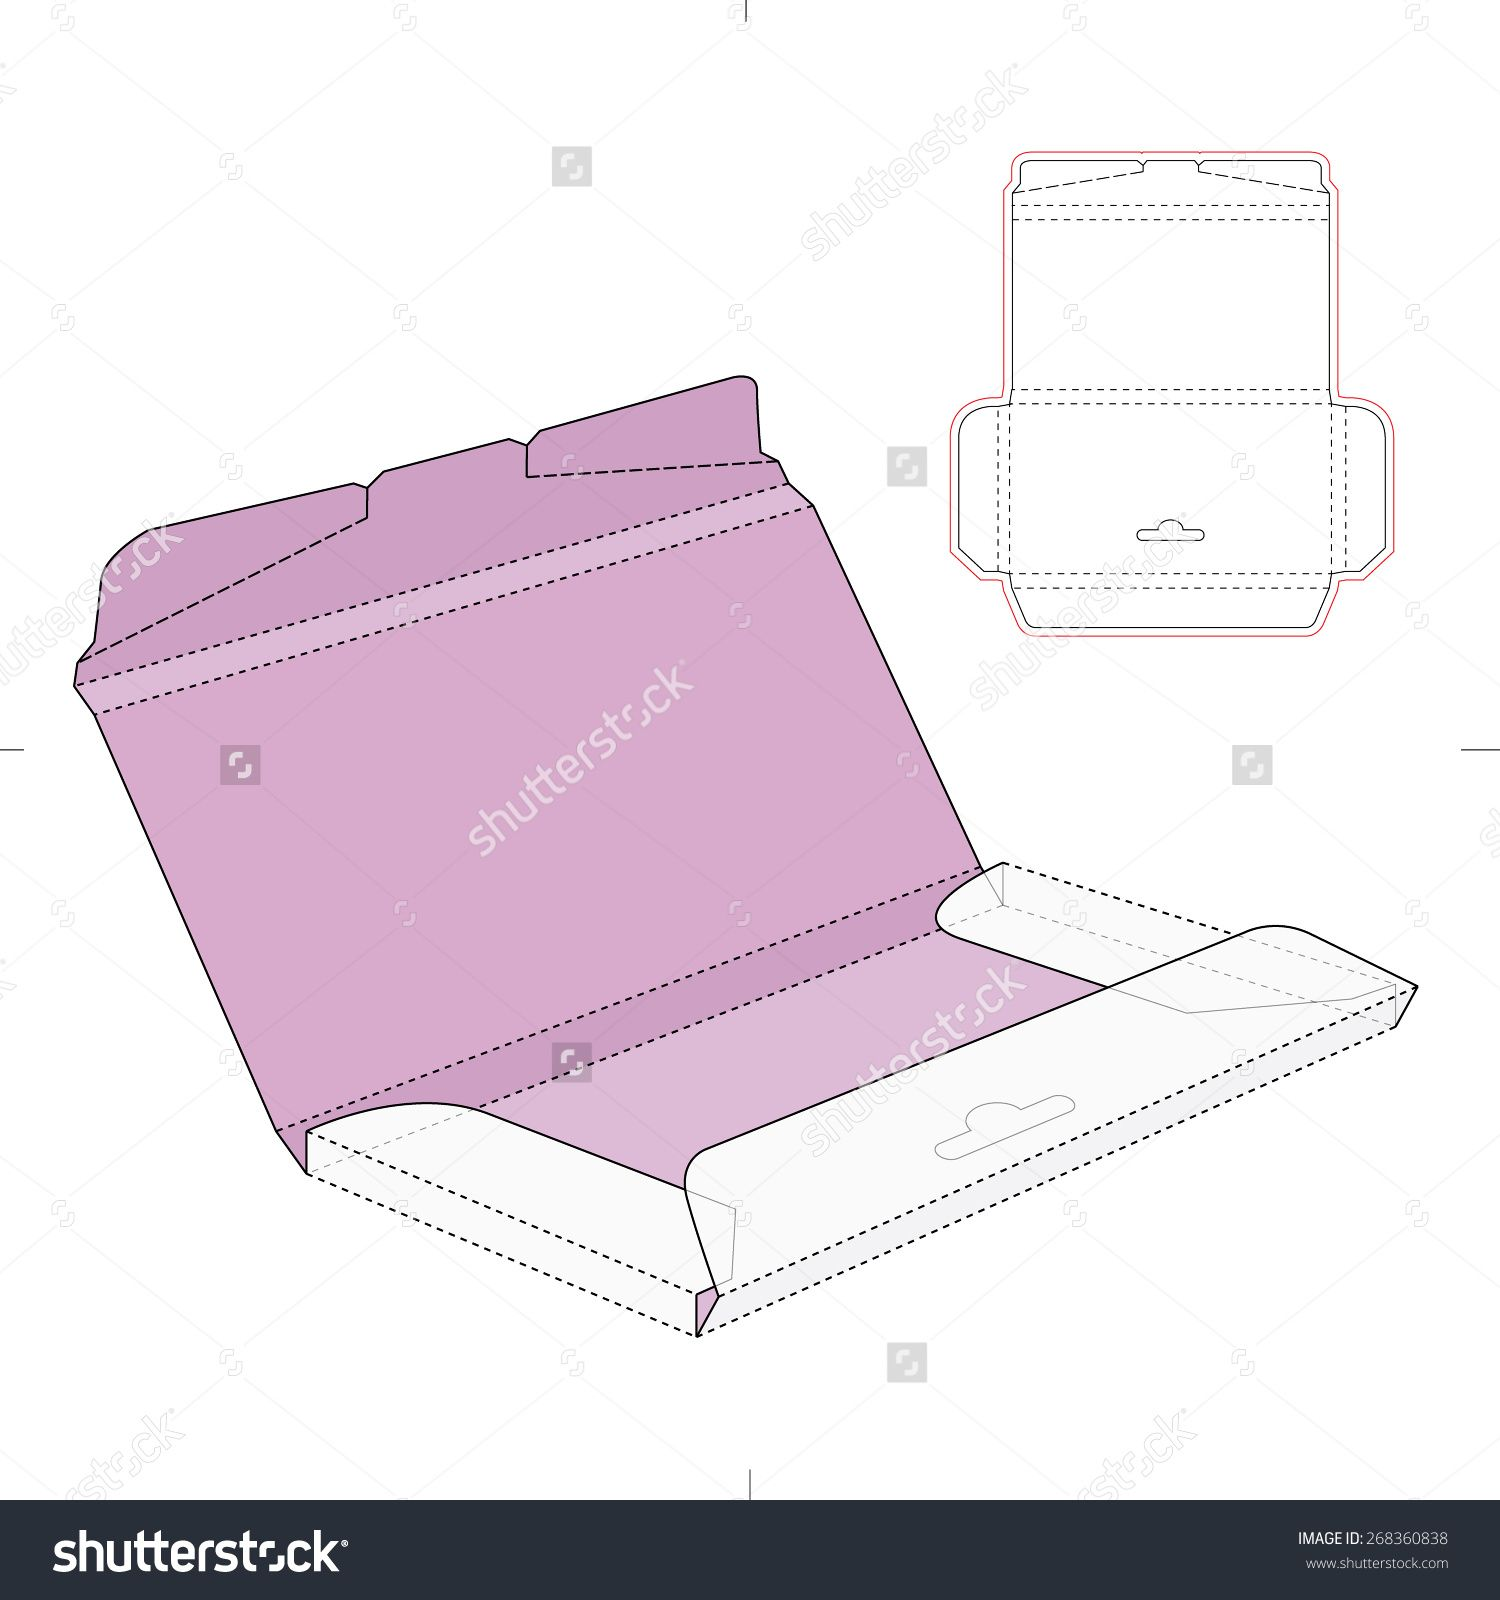 Pin On Boxes And Envelopes